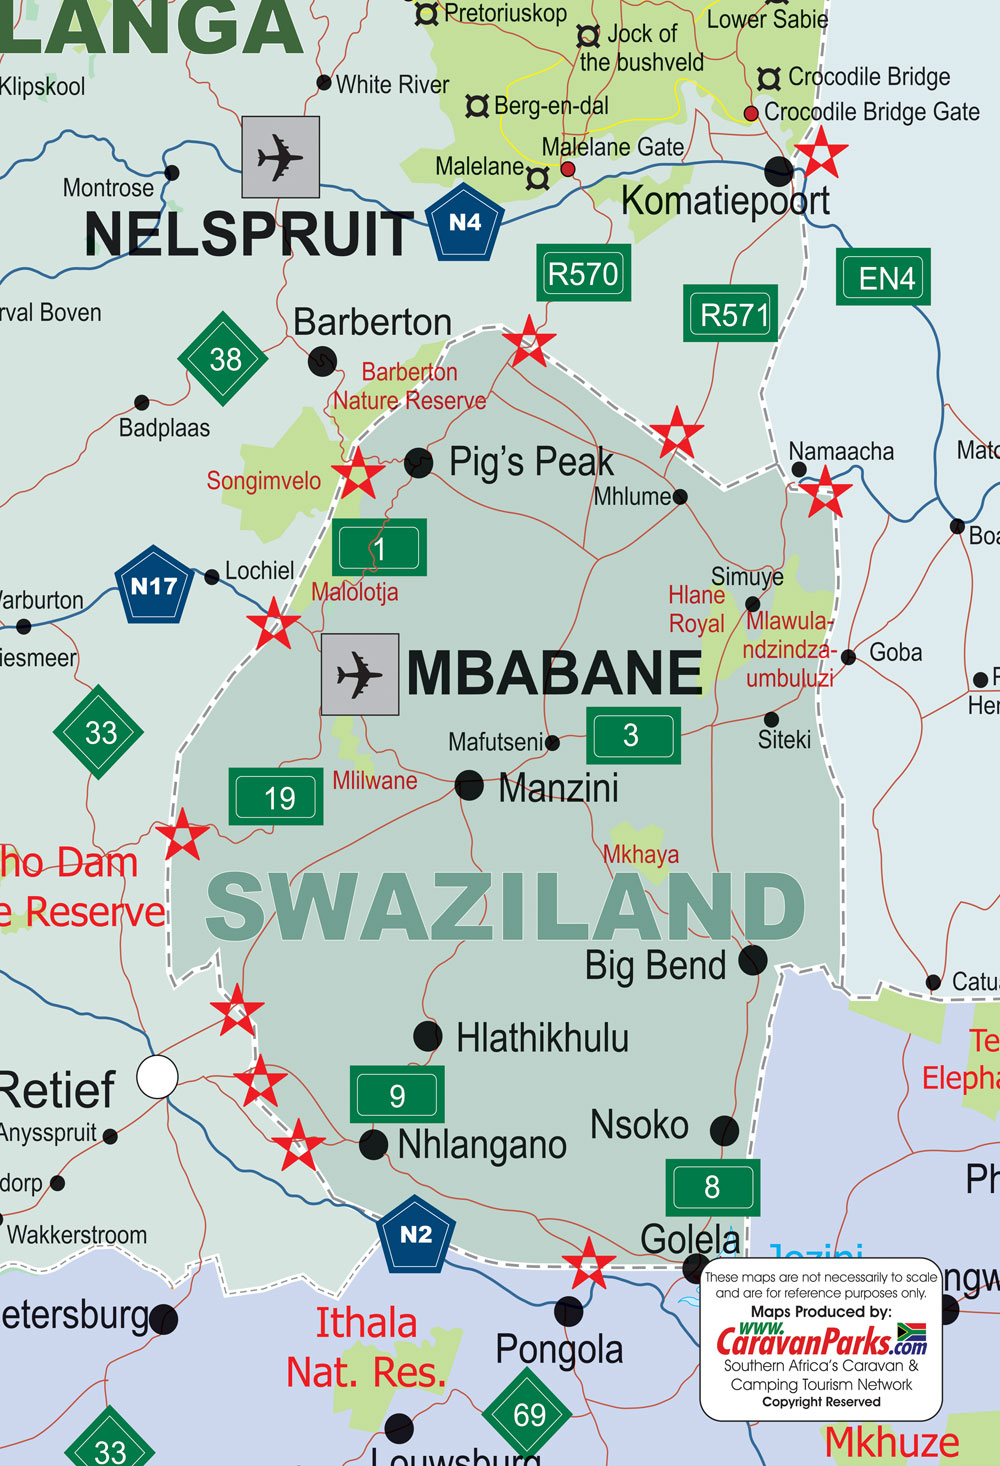 Swaziland Map CaravanParkscom Maps Caravan Parks Holiday Resorts - Swaziland map